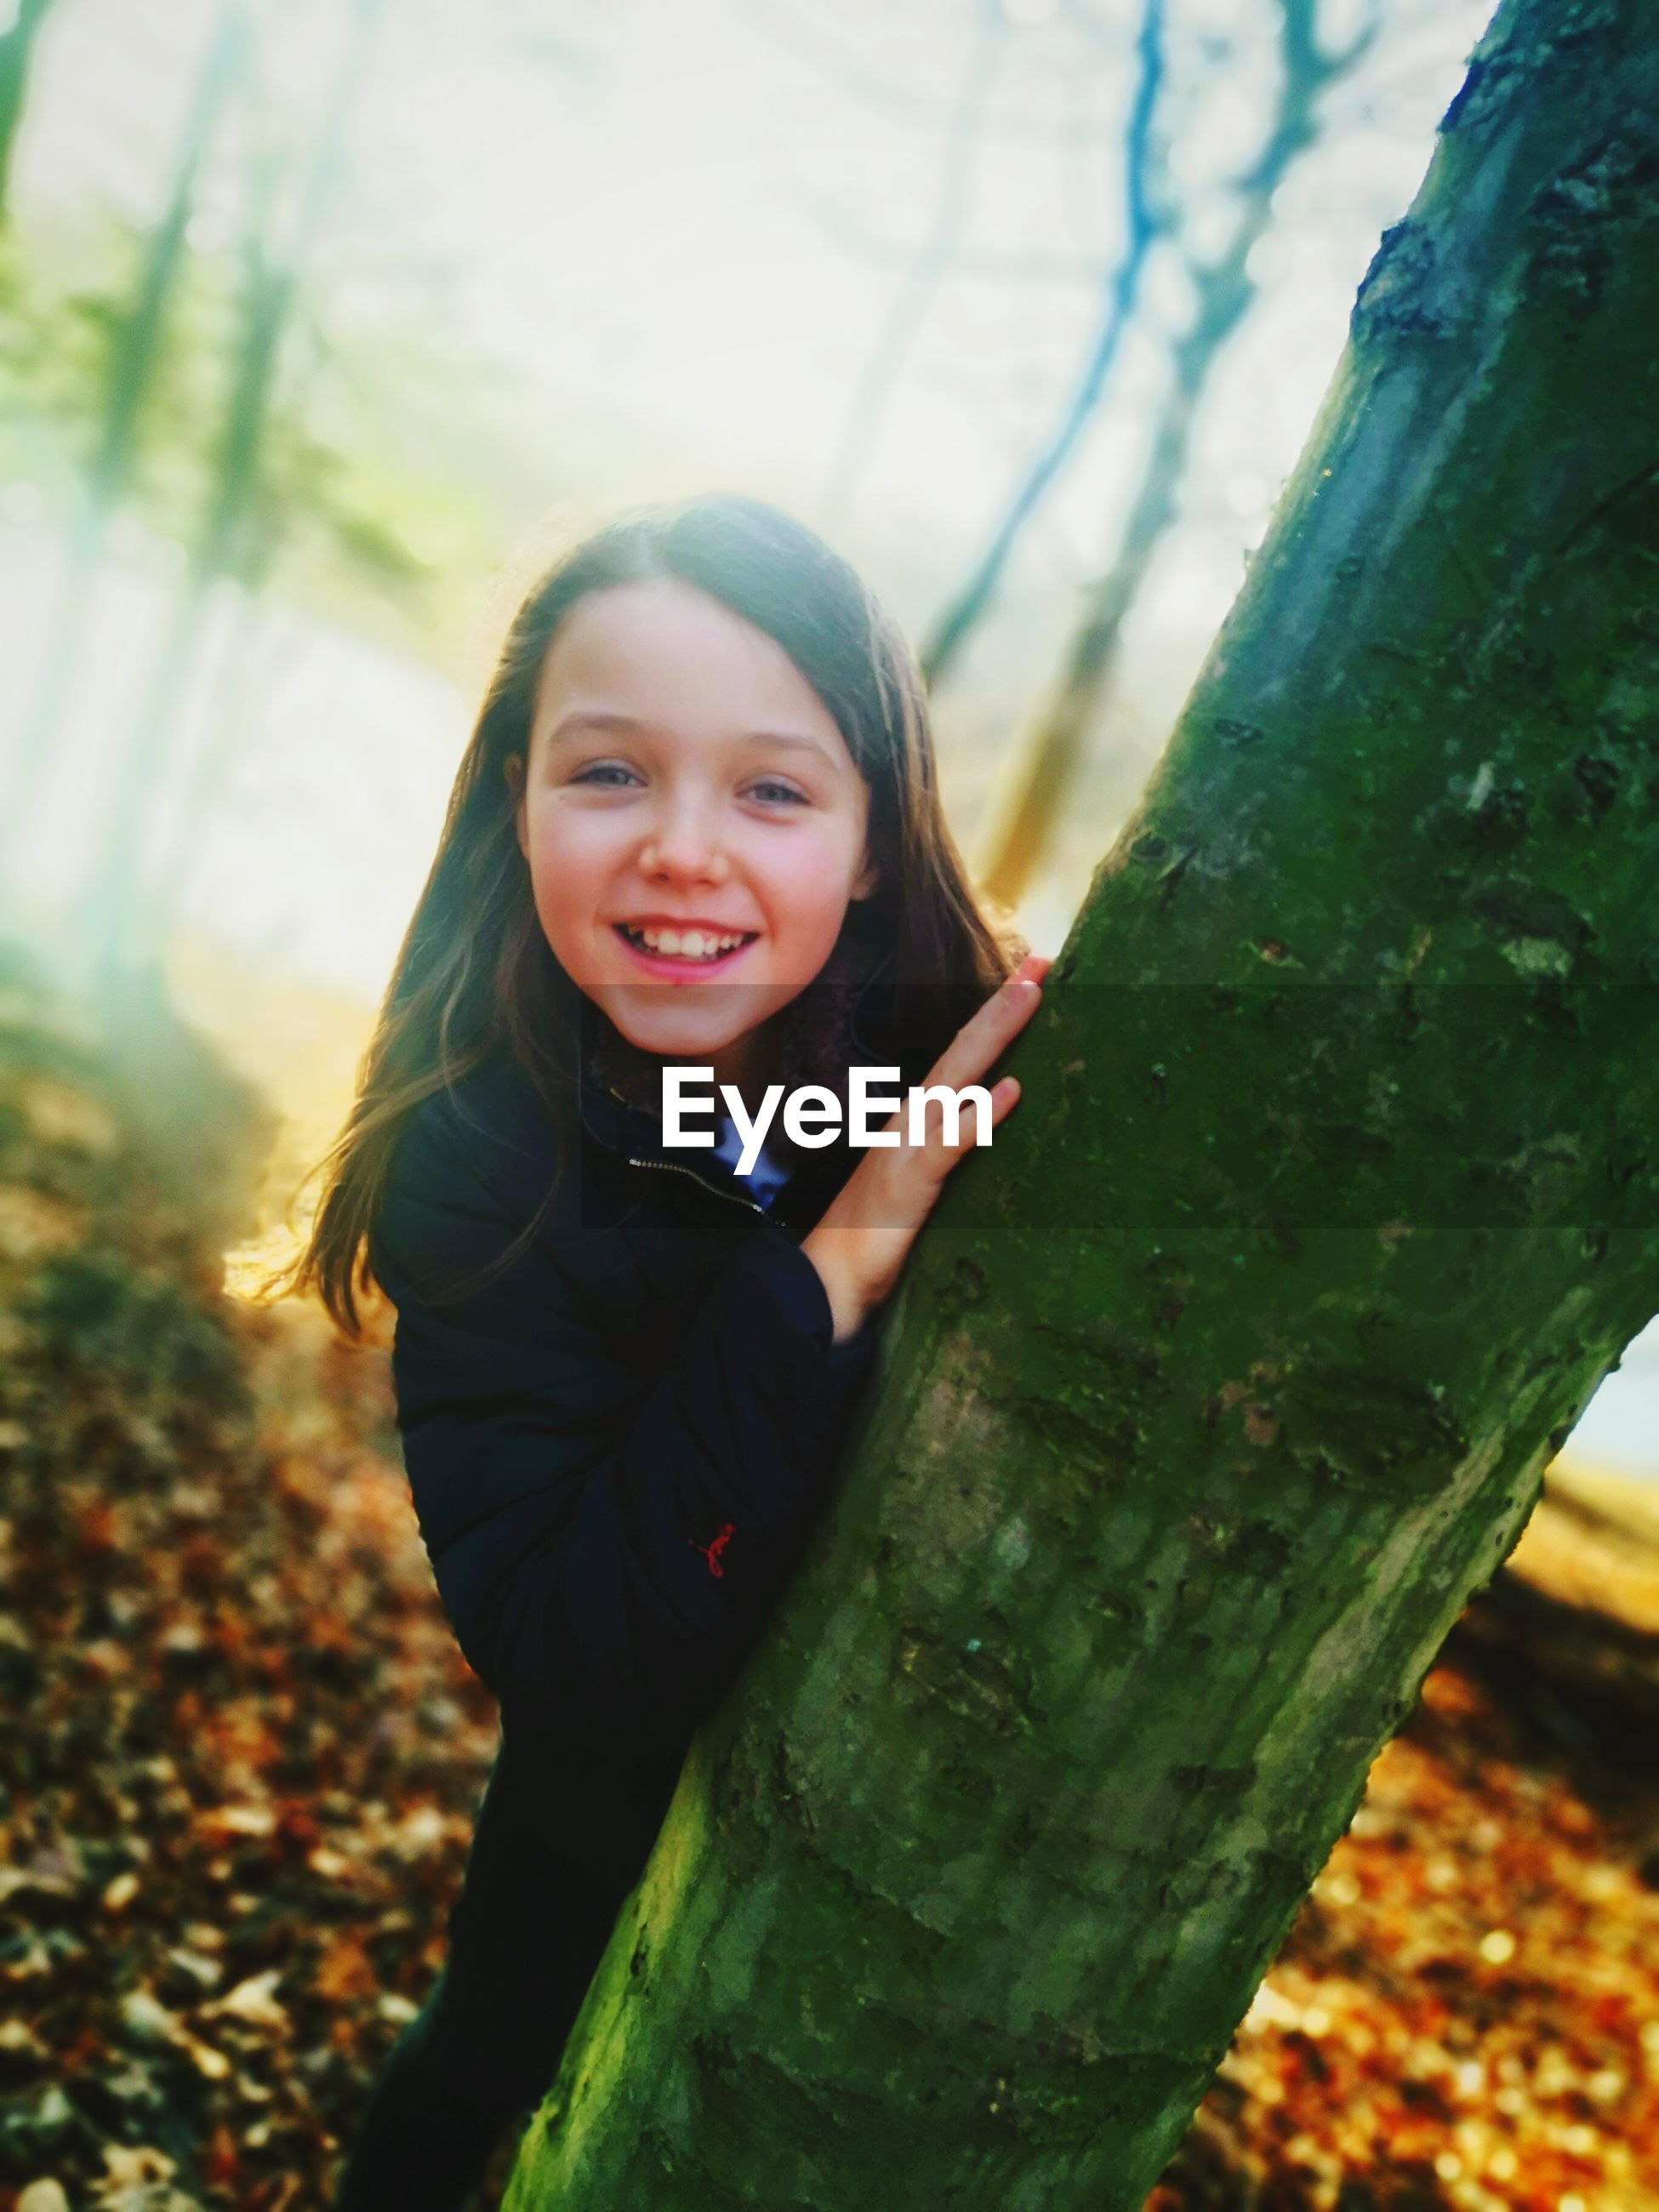 PORTRAIT OF HAPPY GIRL SMILING AGAINST TREE